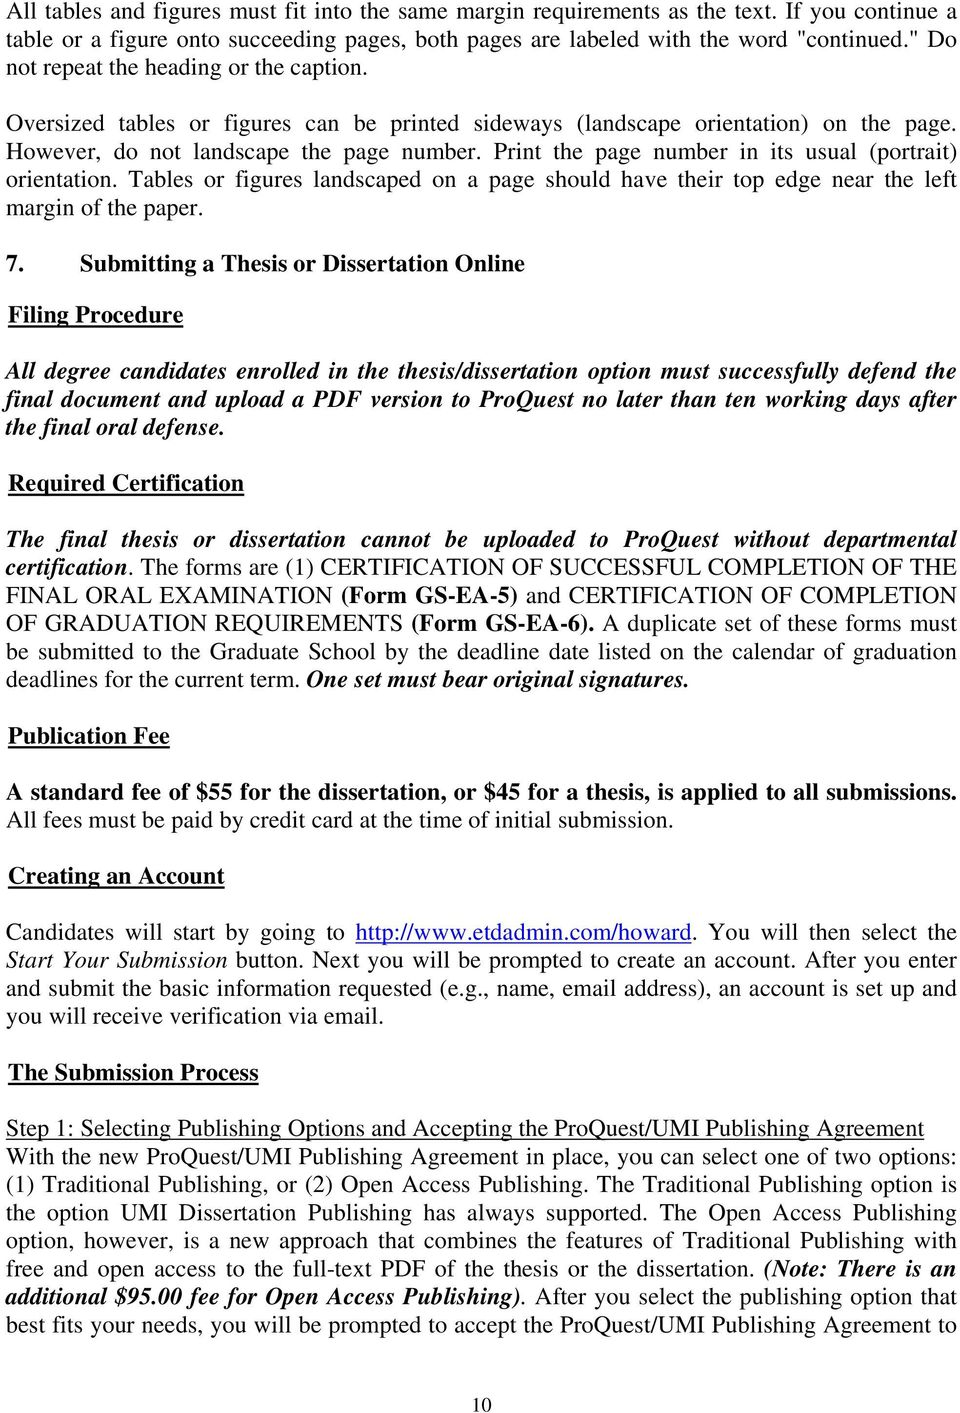 proquest umi dissertation publishing address Thesis and dissertation permission and contact to be consistent with guidelines for publishing electronic theses and dissertations through proquest/umi.